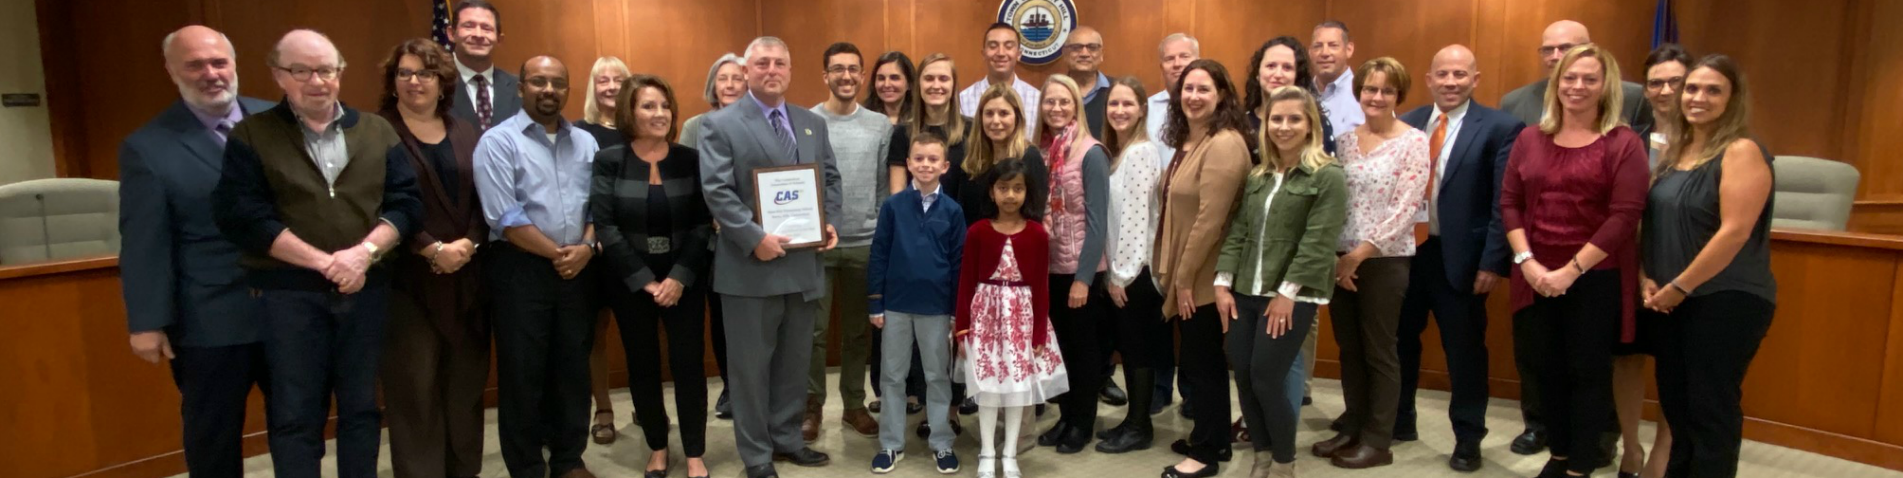 West Hill Elementary School of the Year Recognition